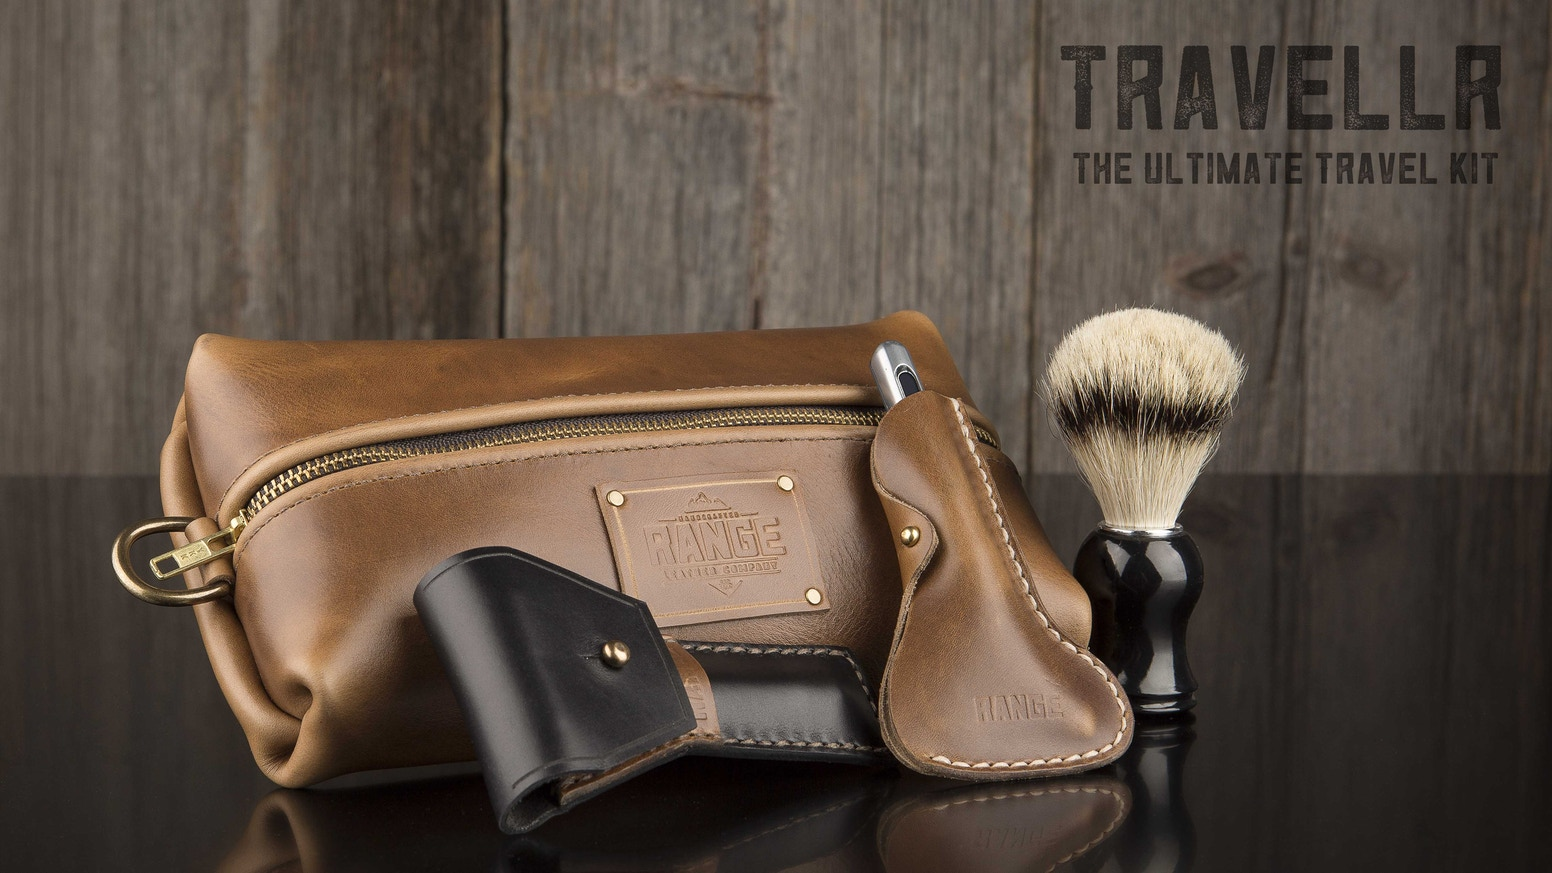 Premium travel bag & razor case handcrafted from premium Horween leather that can serve as a dopp kit, toiletry bag, or makeup case.